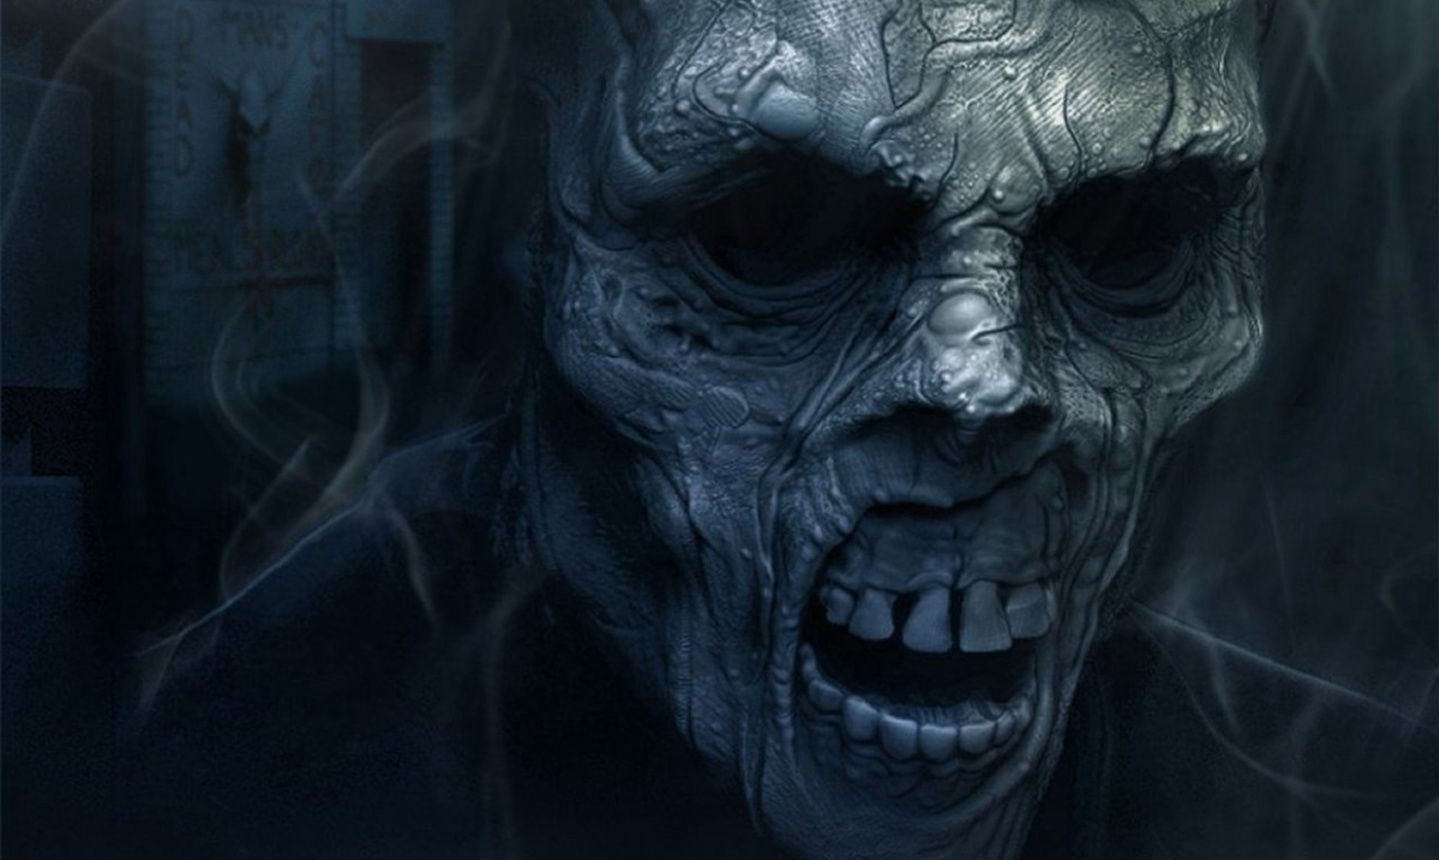 Zombie_underworld_evil_face